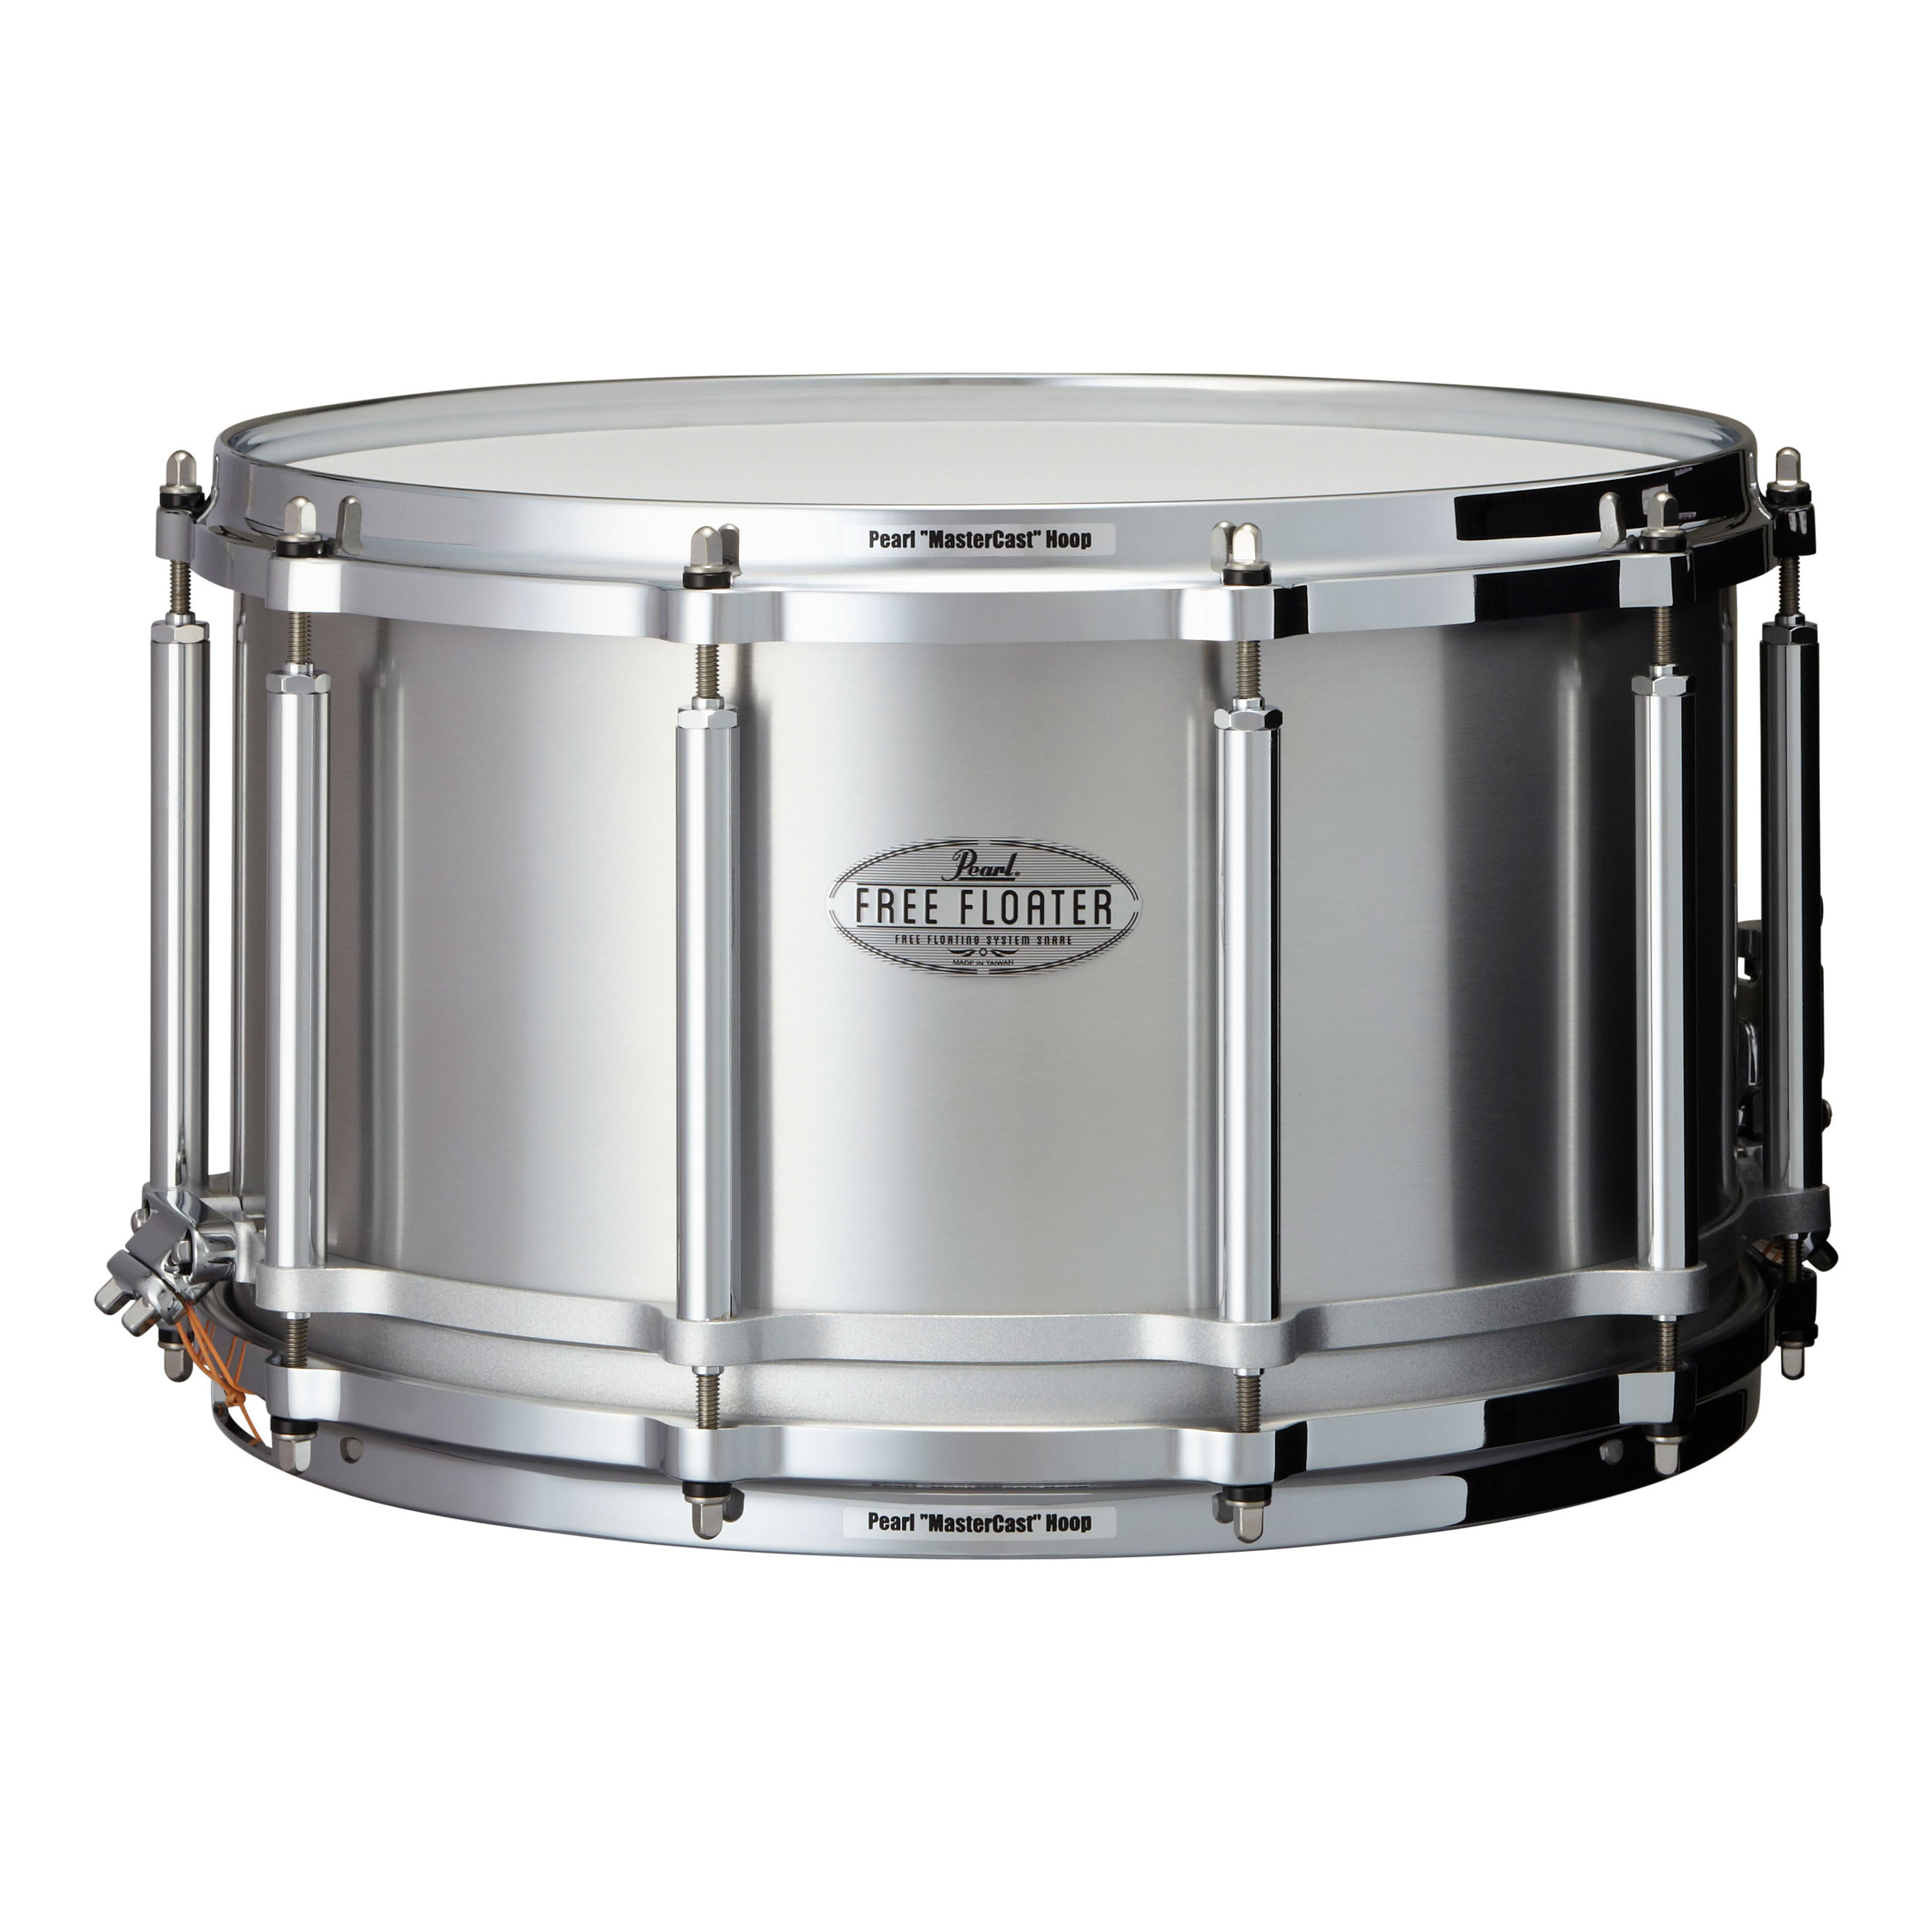 "Pearl 14"" x 8"" Task-Specific Free Floating Seamless Aluminum Snare Drum"